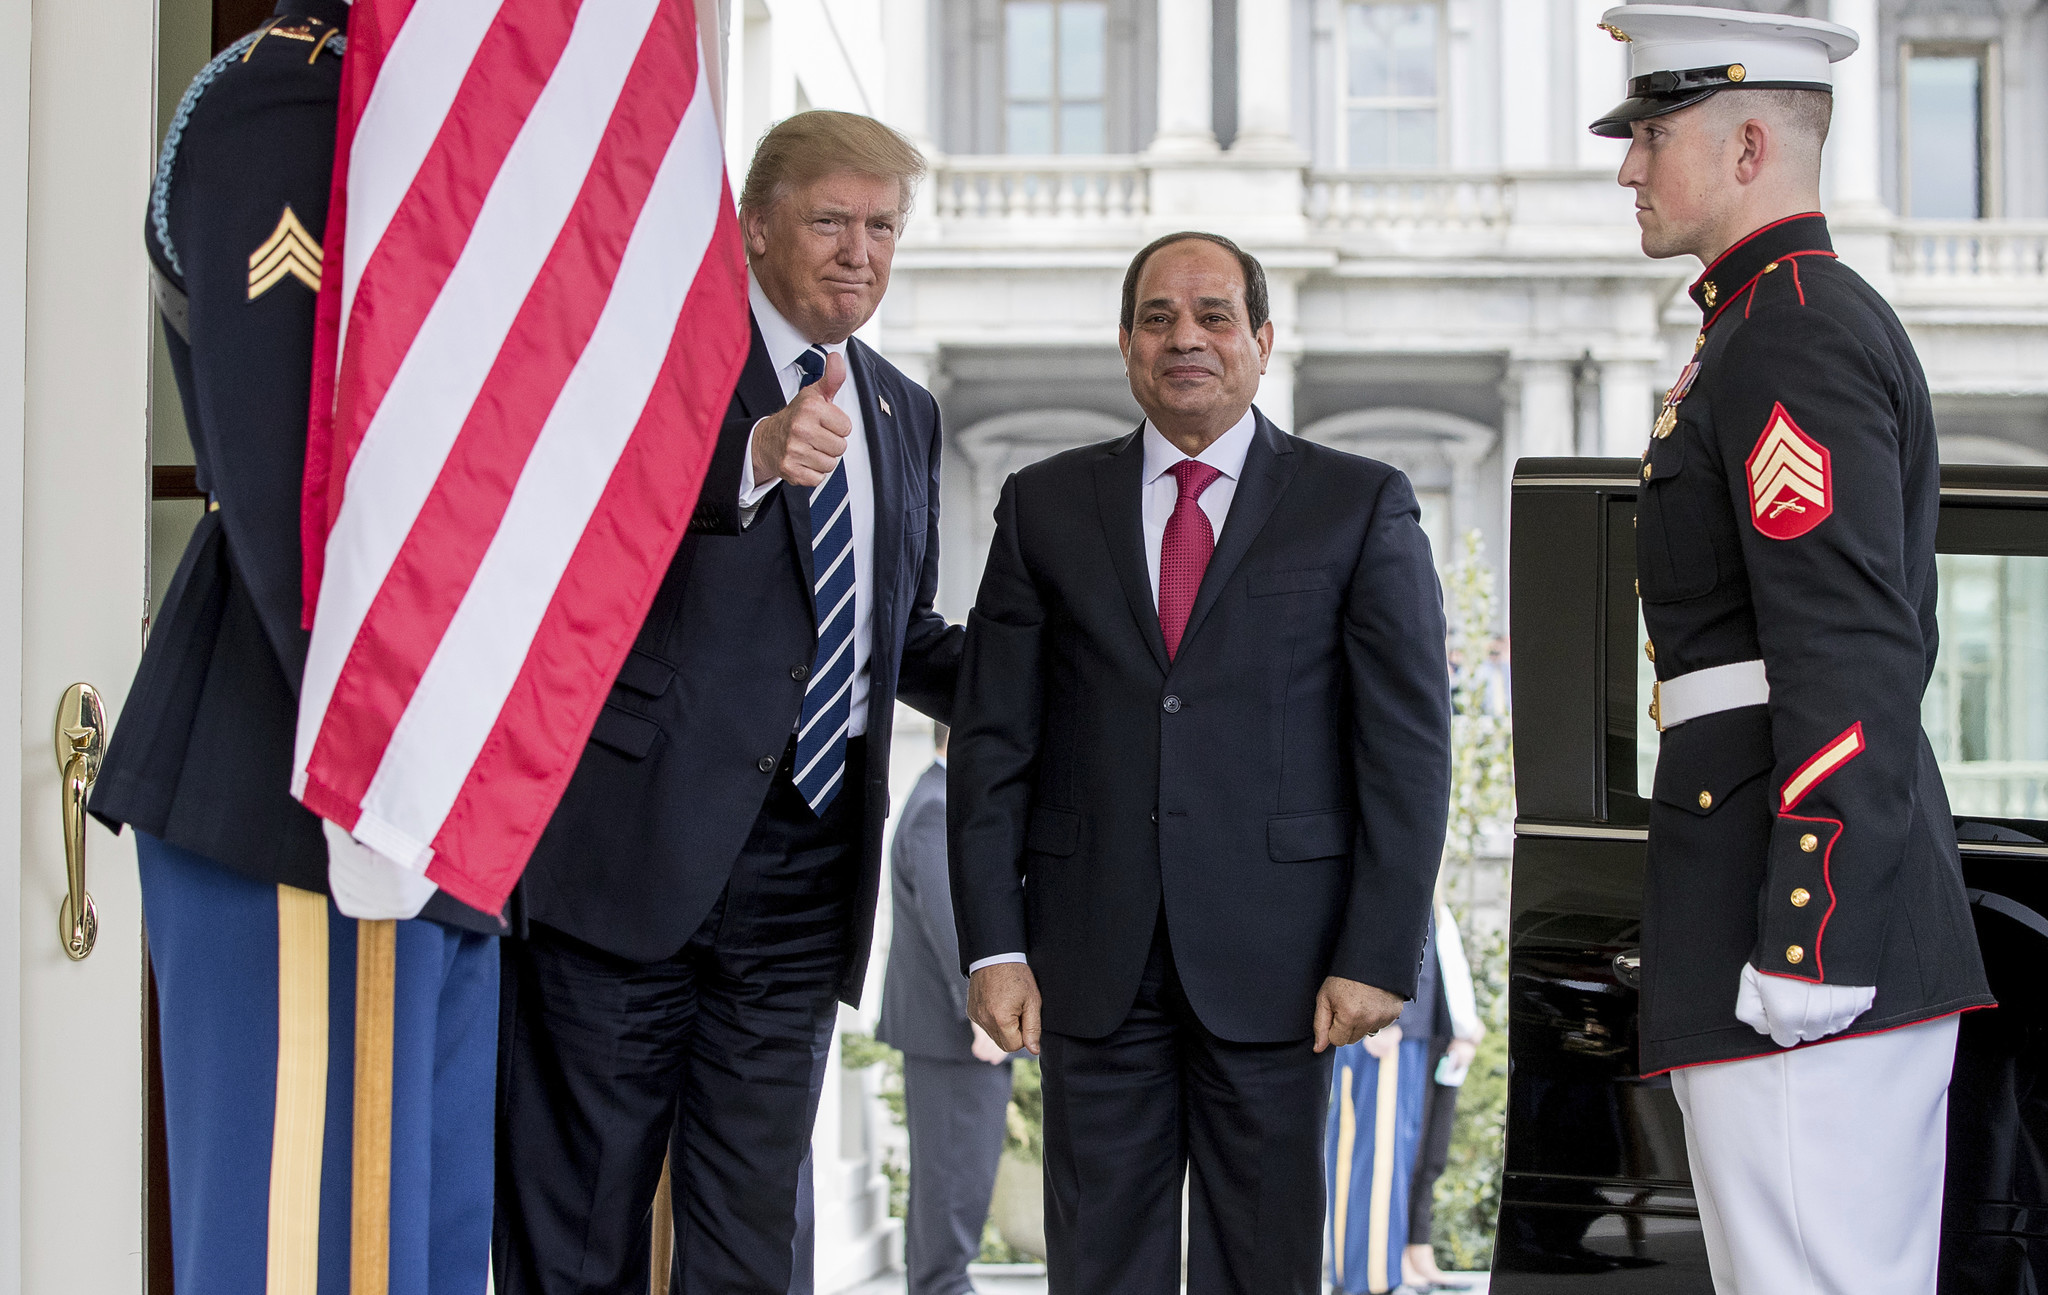 Trump says U.S. will forge a 'great bond' with Egypt